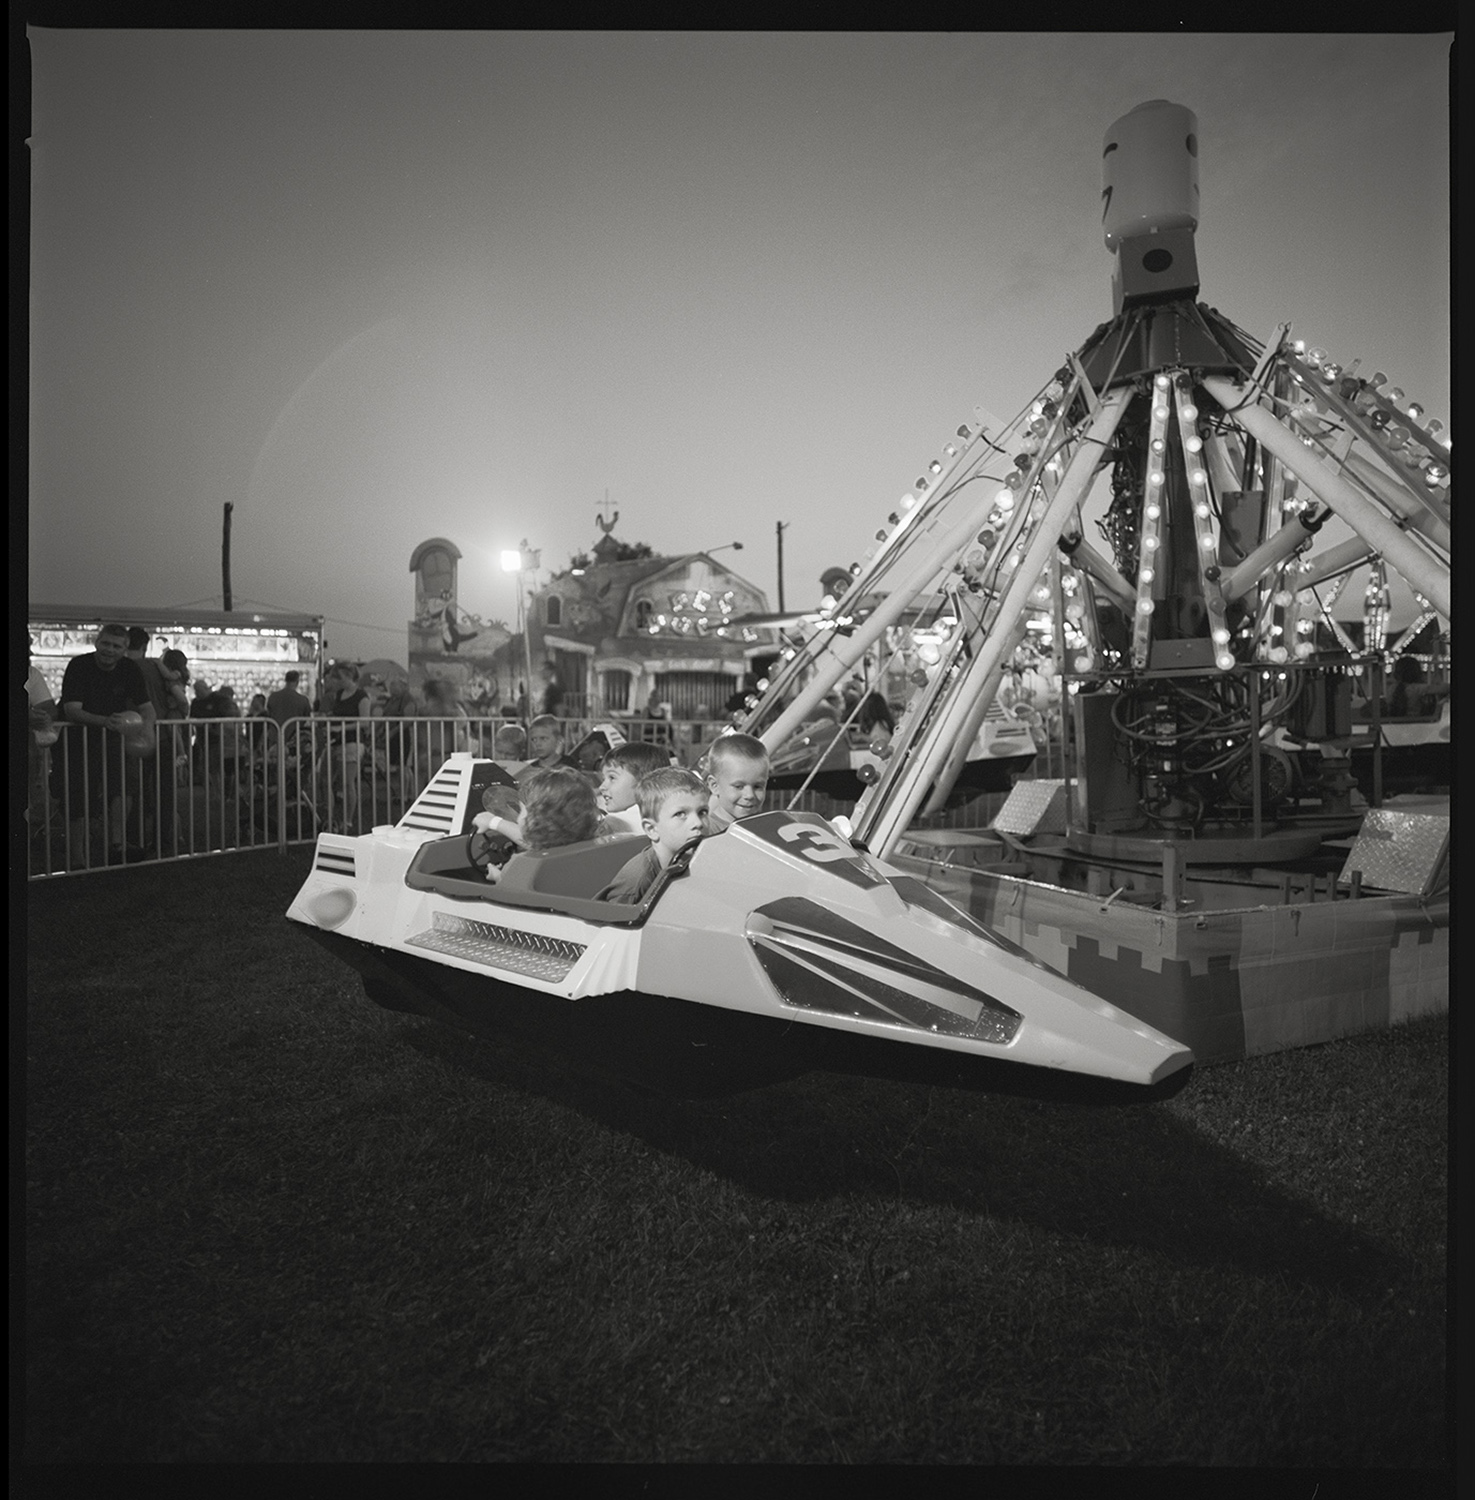 An image from Eric Kunsman's series Private